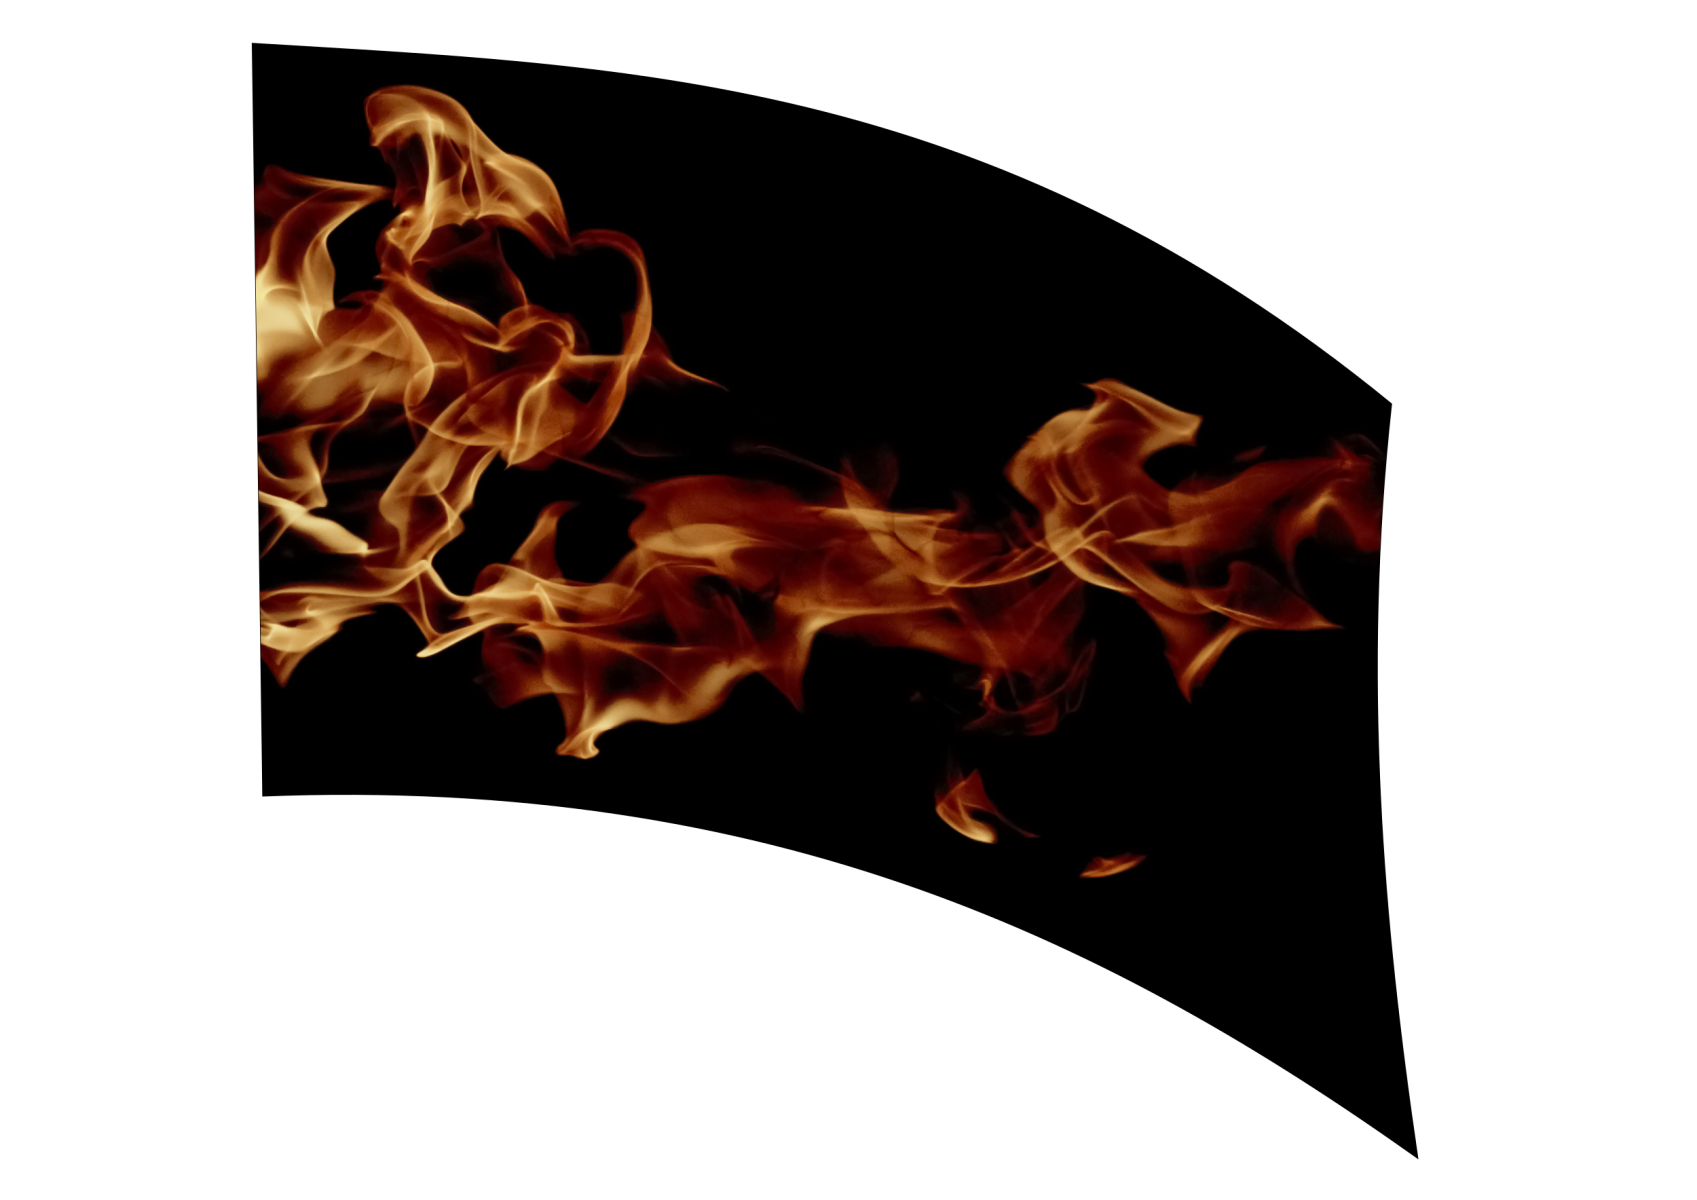 040106s - 36x54 Standard Realistic Flames 2